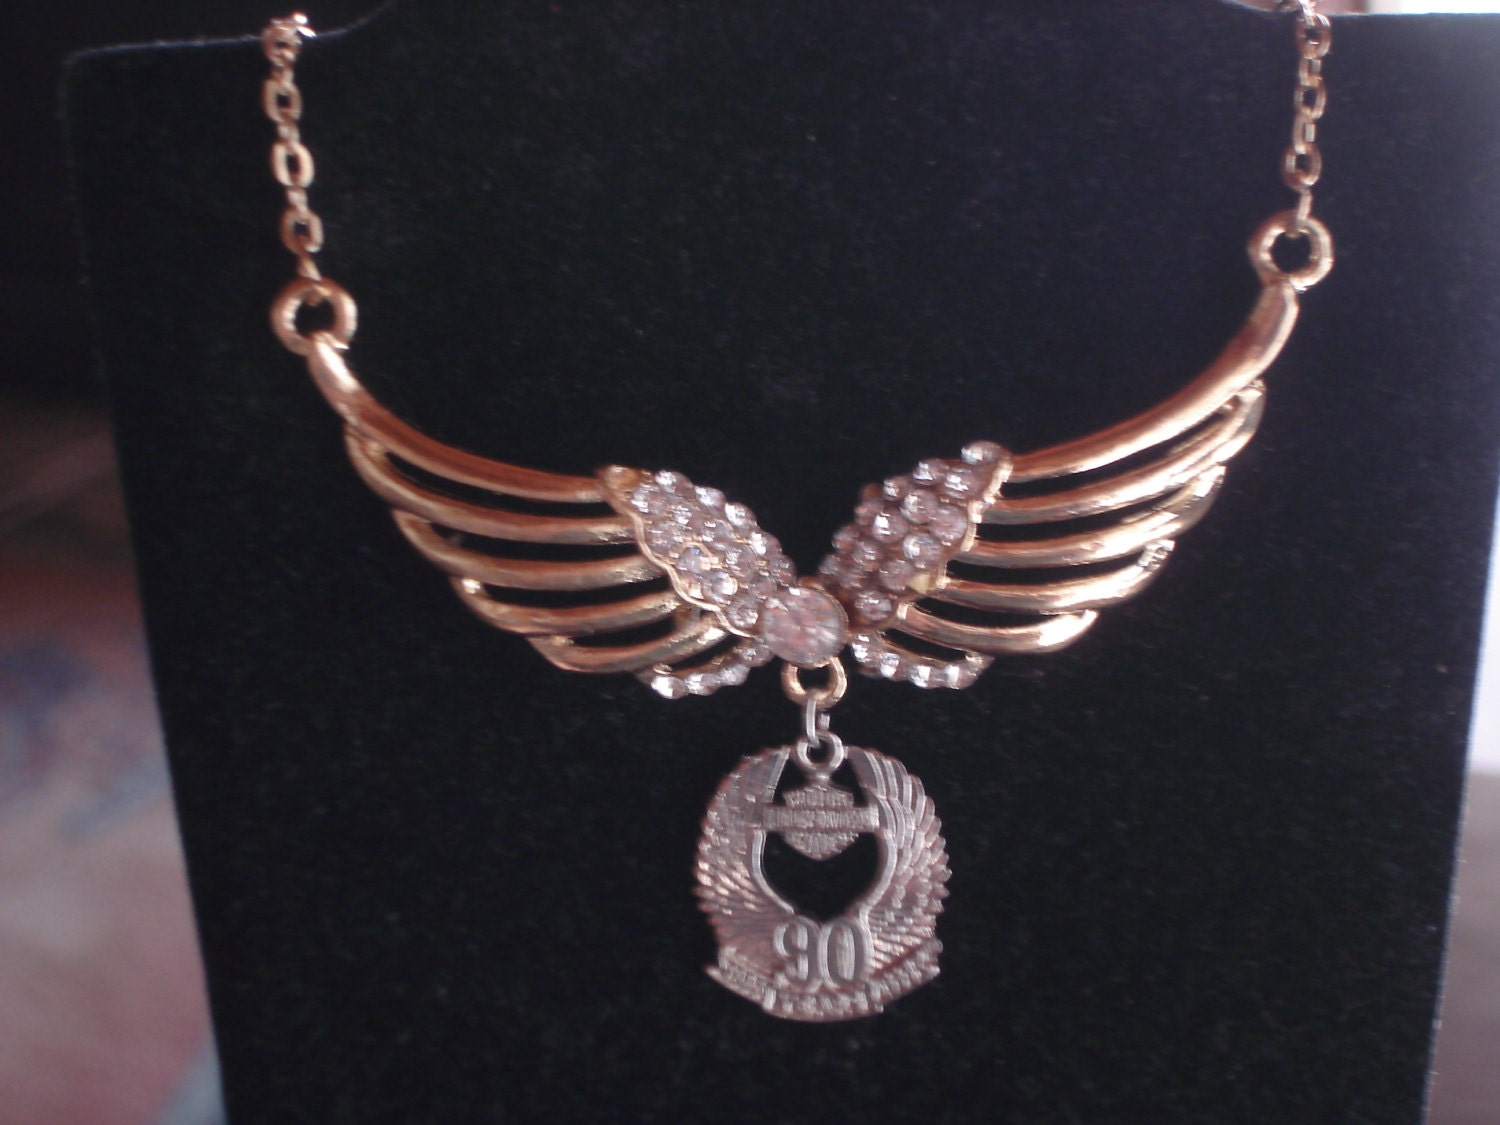 sale harley davidson 90th anniversary wing necklace